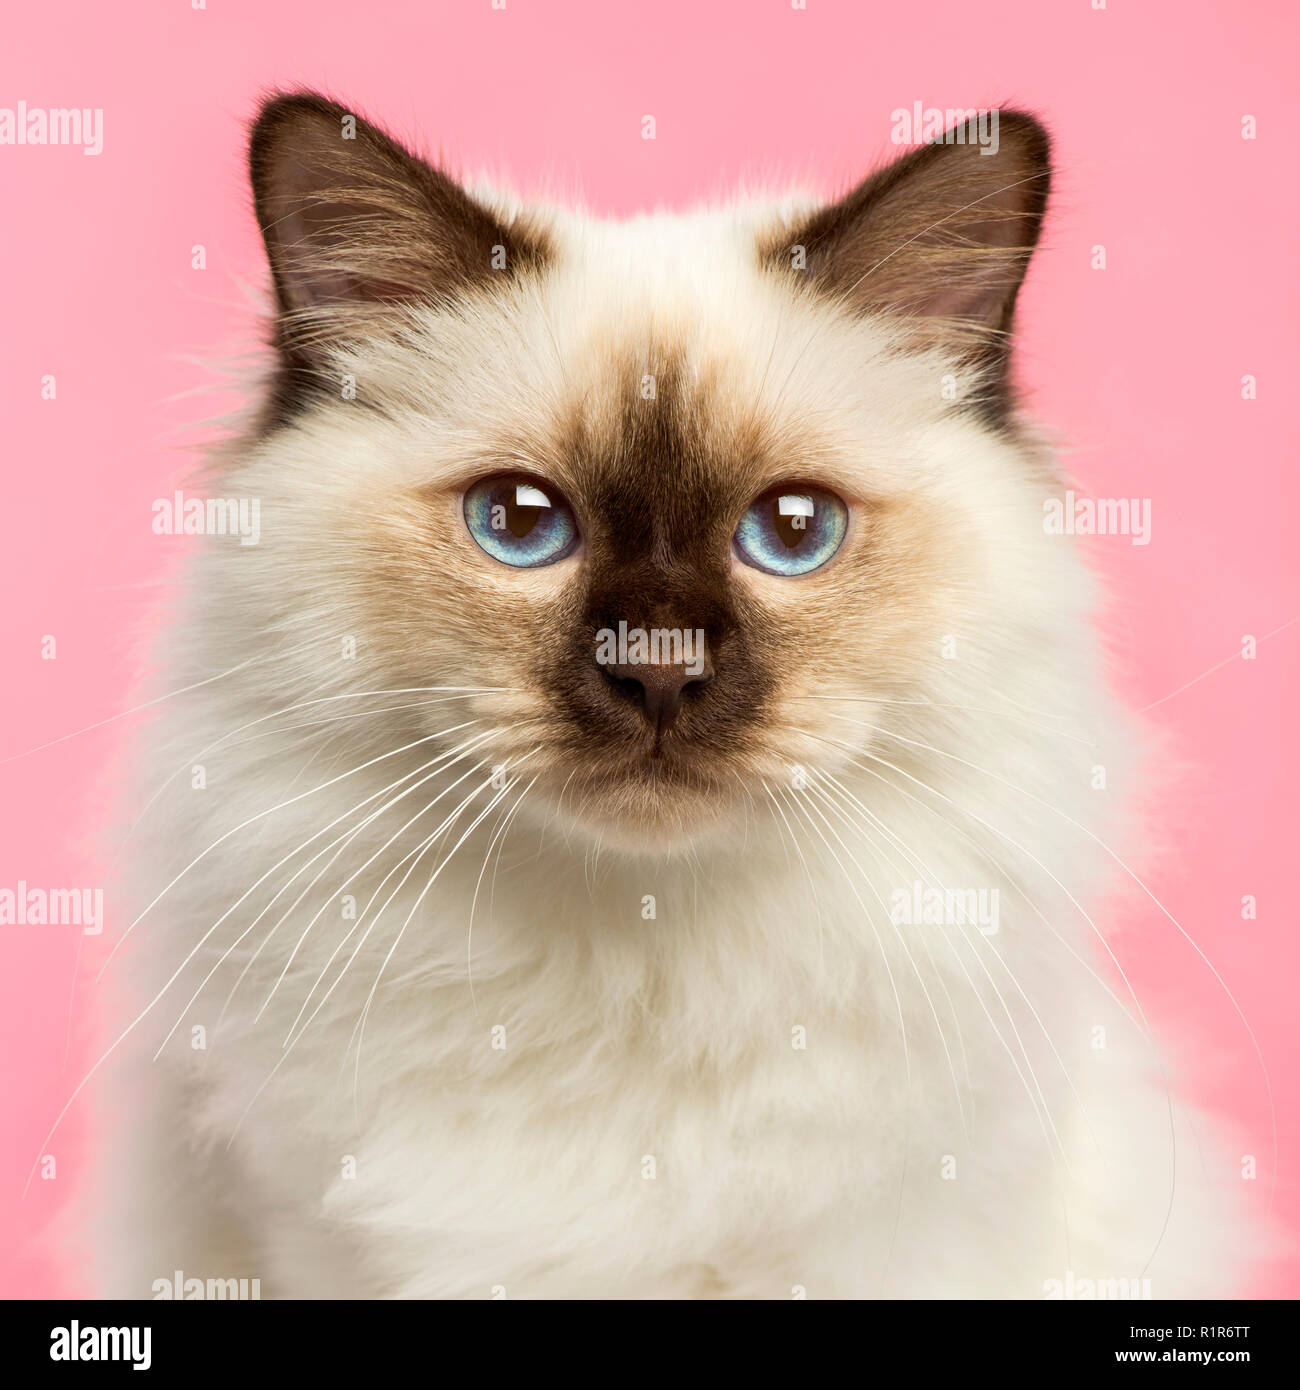 Close-up of a Birman kitten looking at the camera, 5 months old, on a pink background - Stock Image